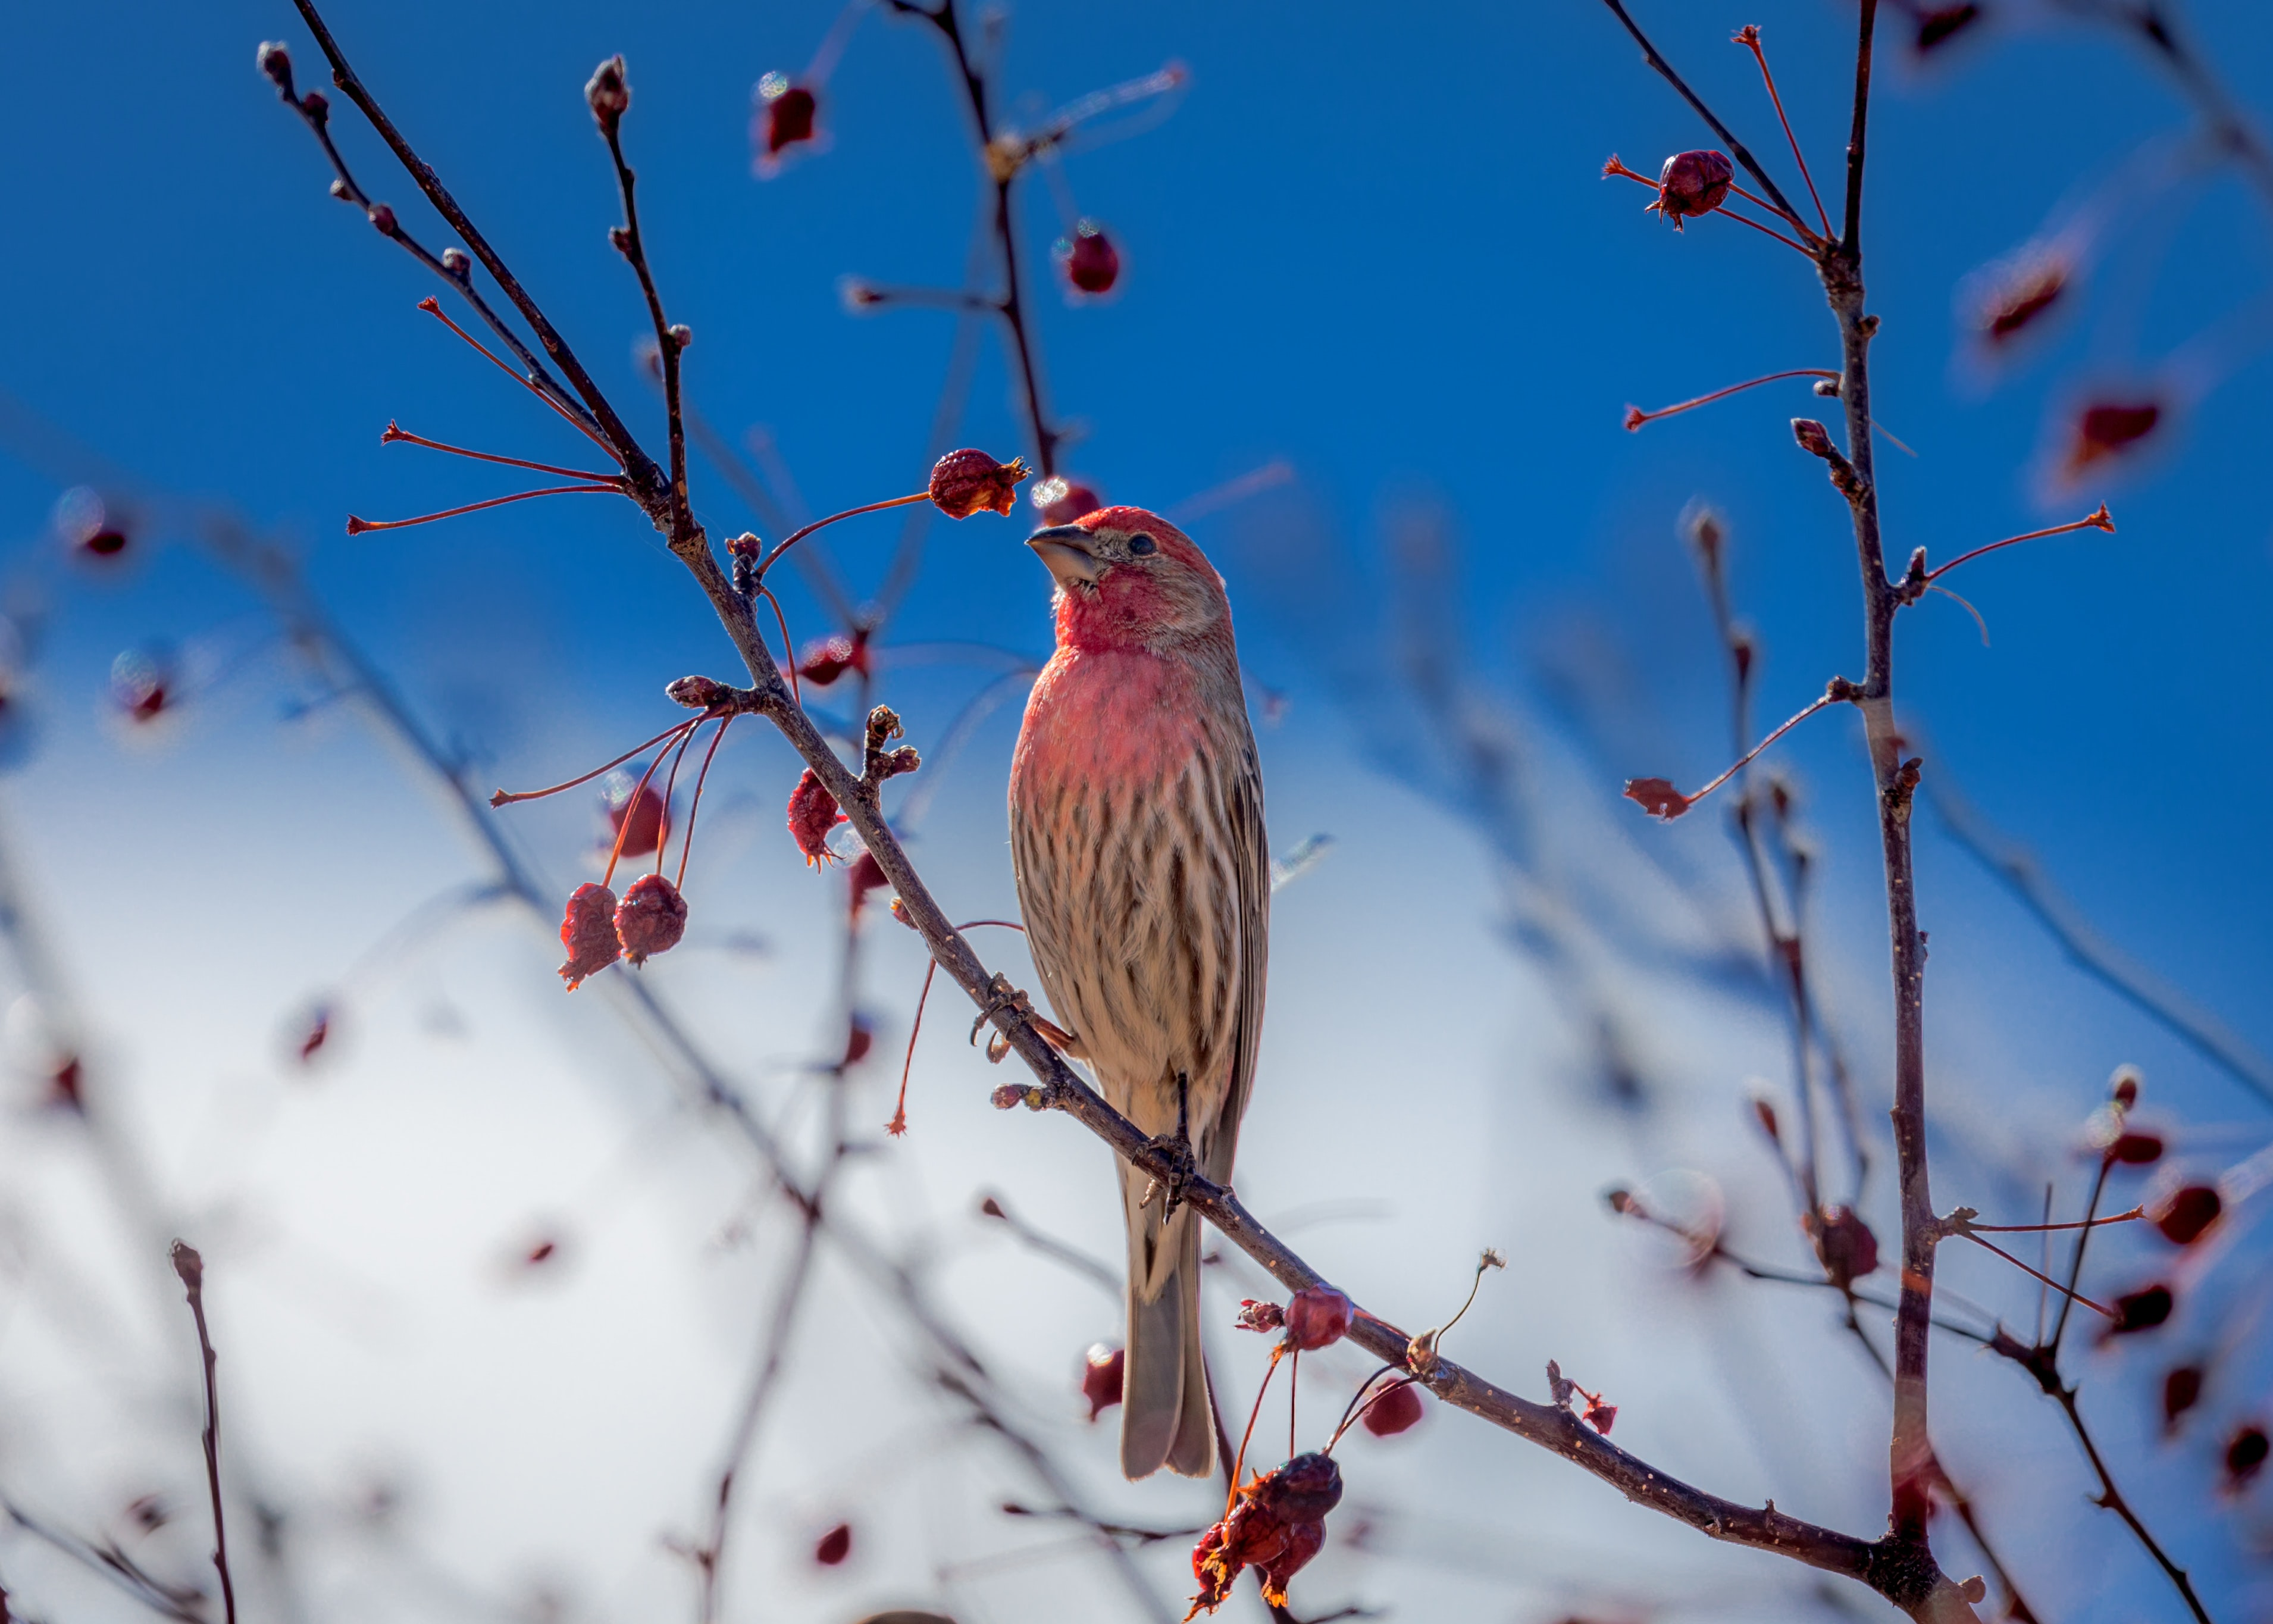 white and red bird on brown tree stem